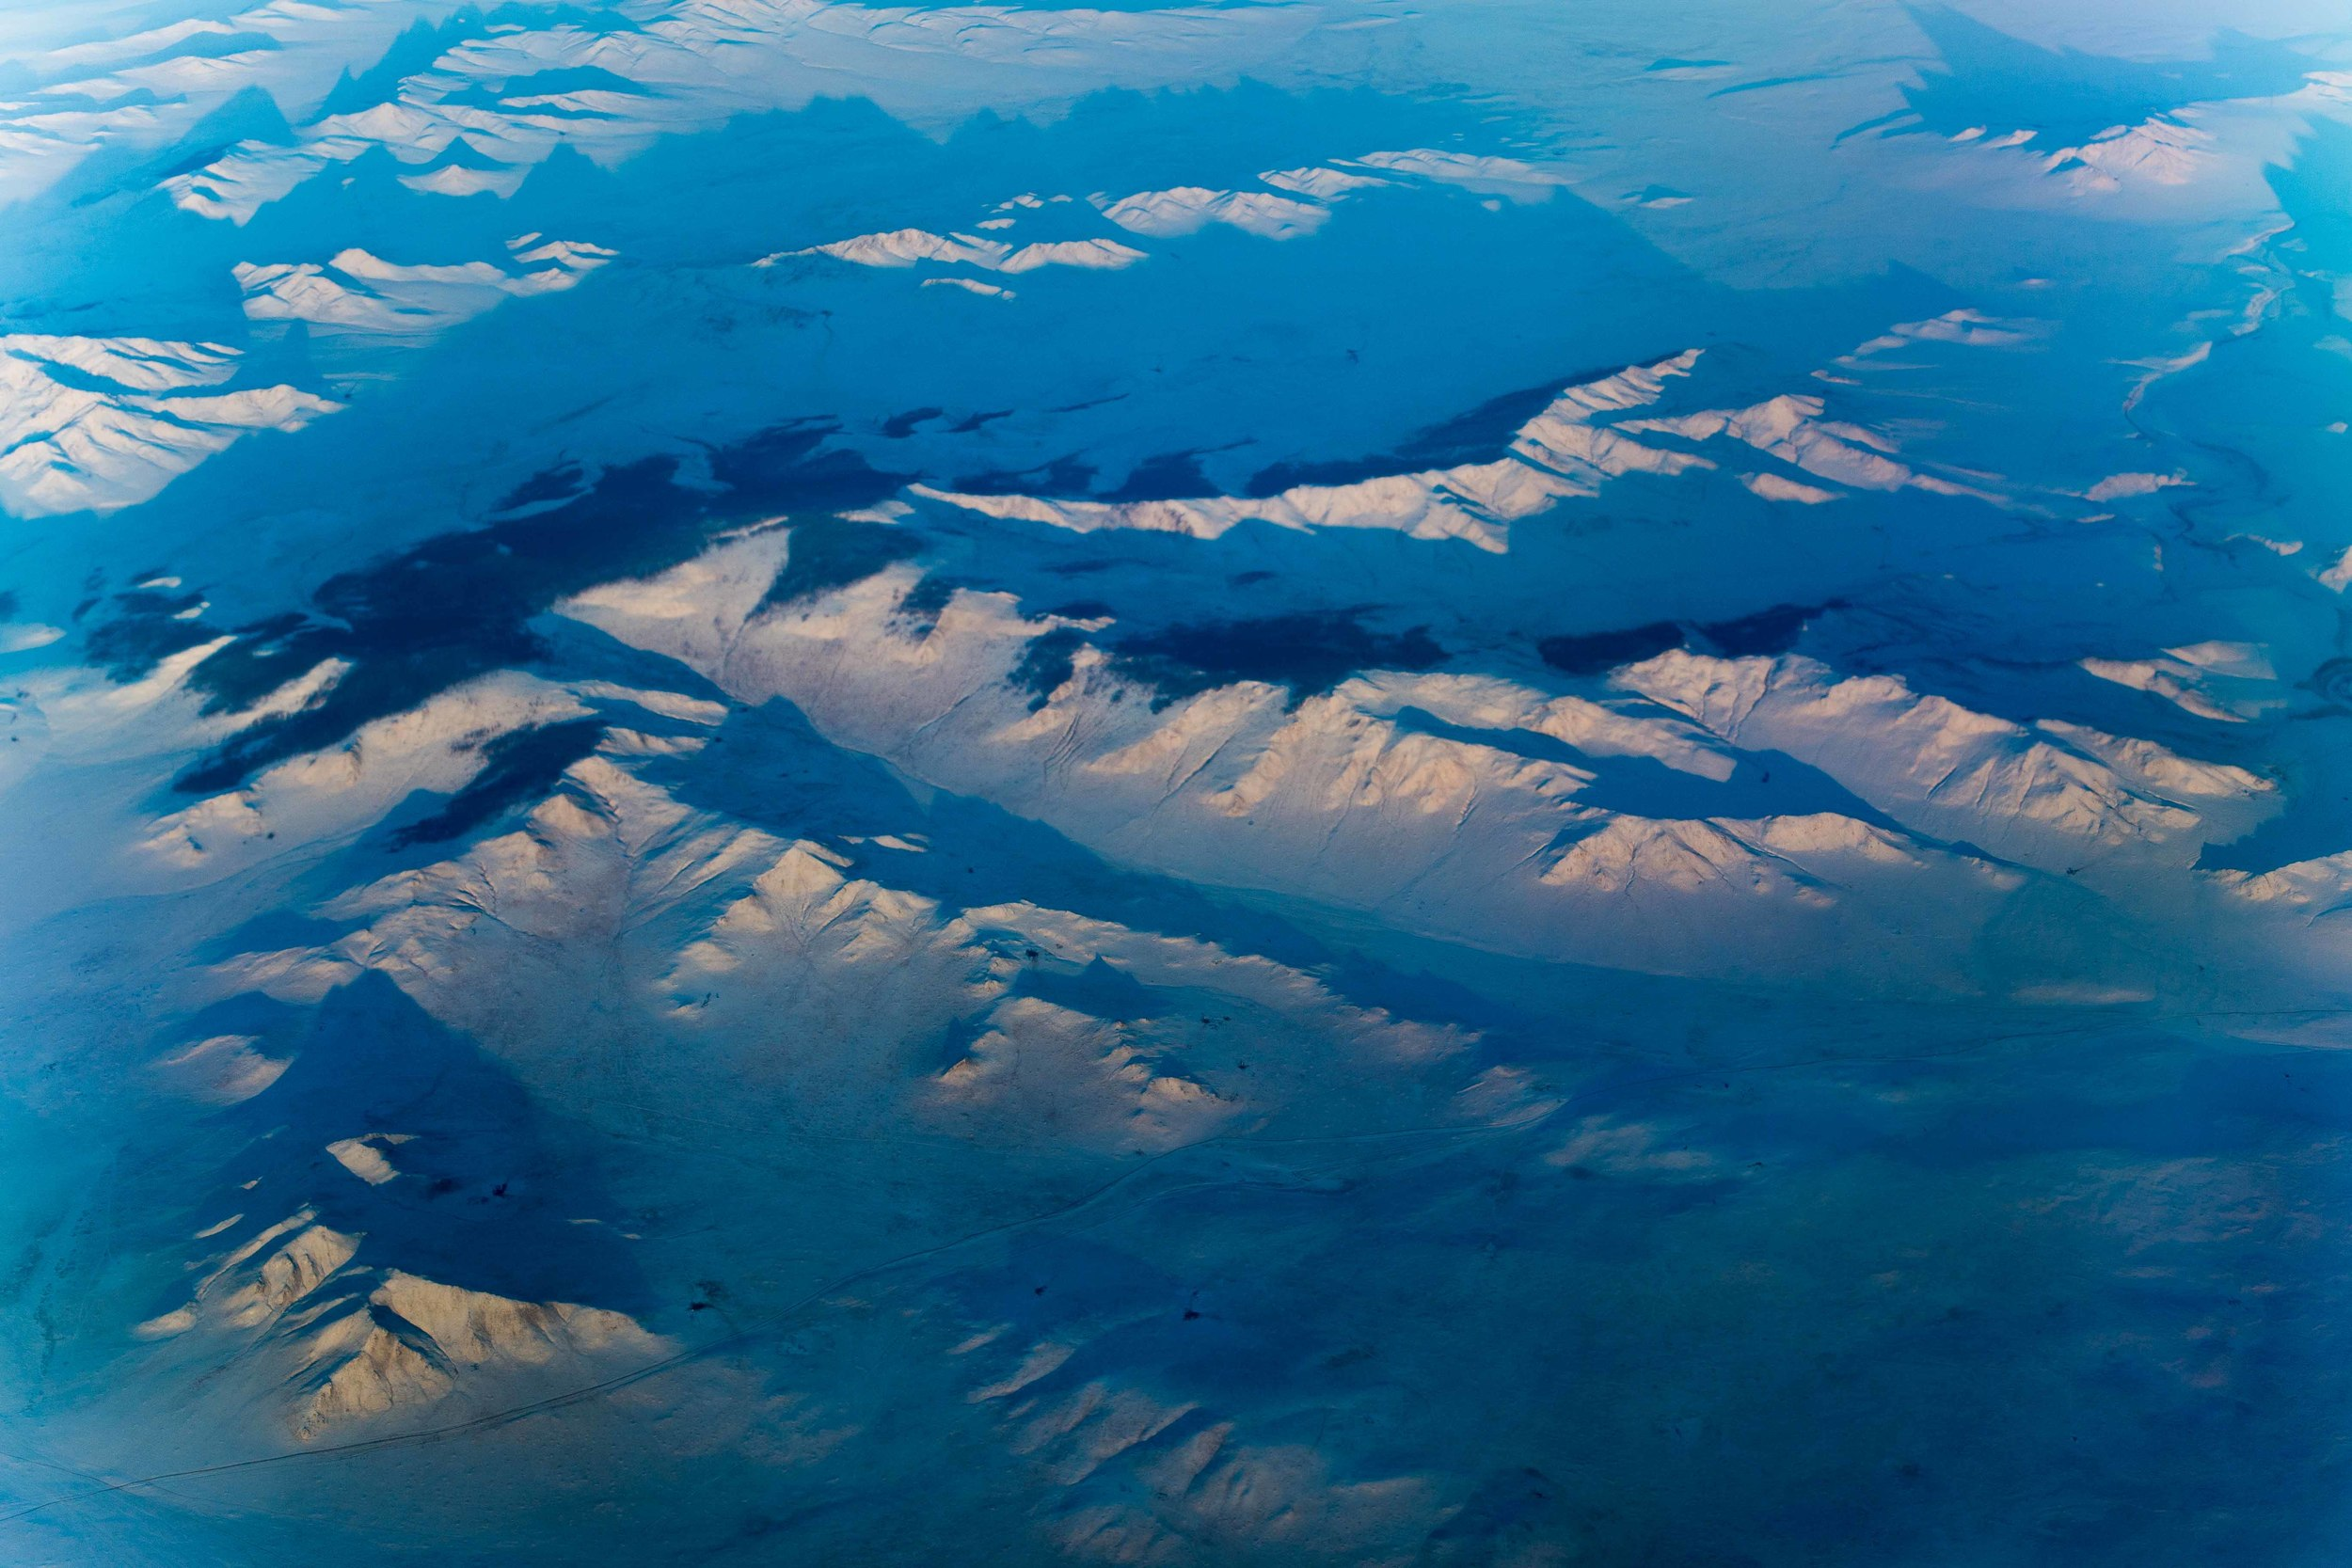 landscapes over Ulan Bater, Mongolia (8 of 11).jpg